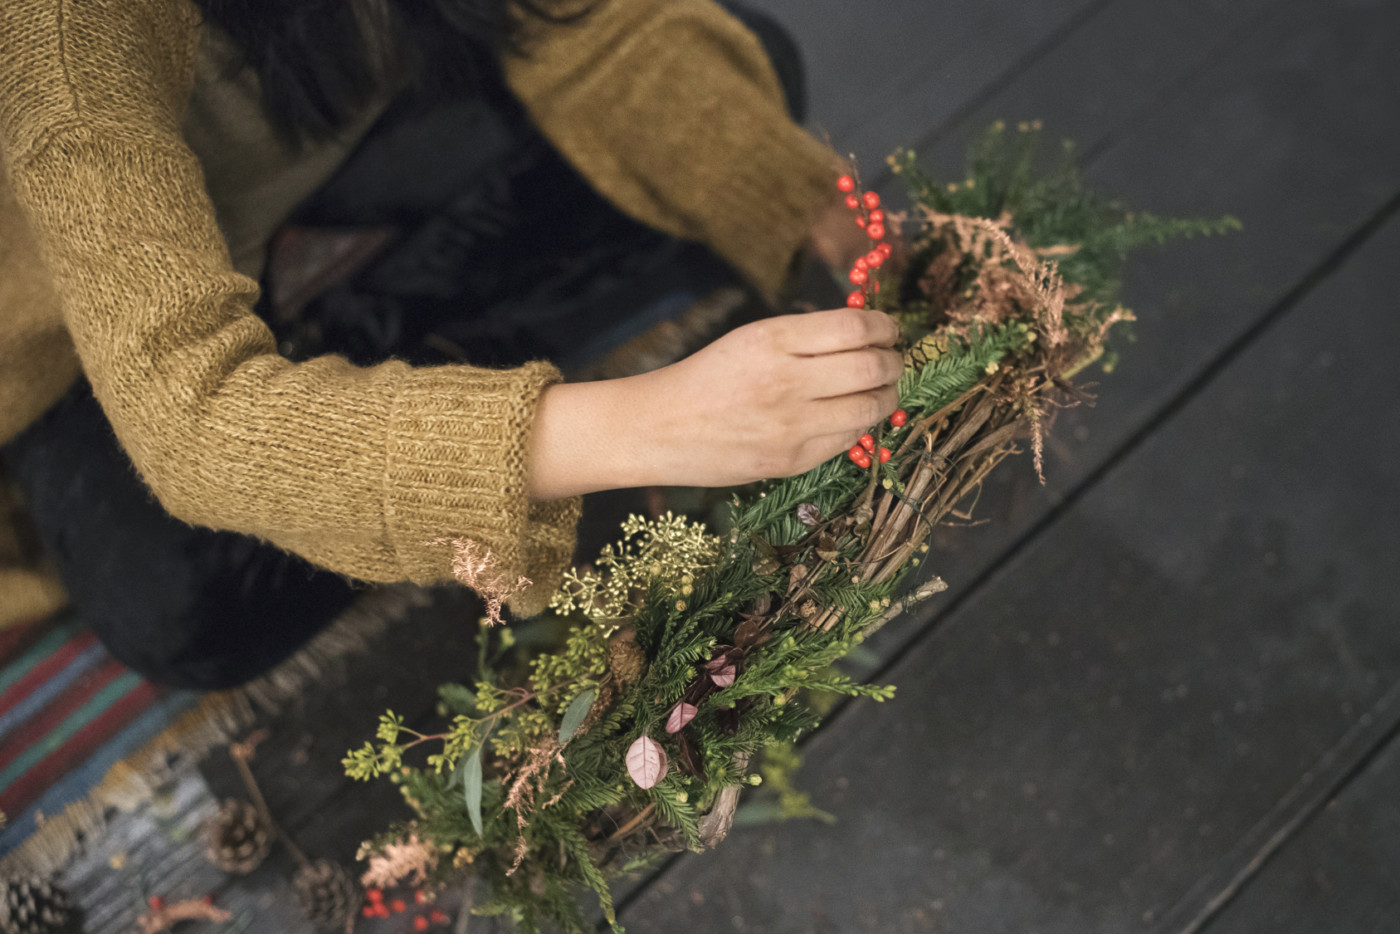 The Coolest Creative Classes to Take in NYC This Winter - Garden